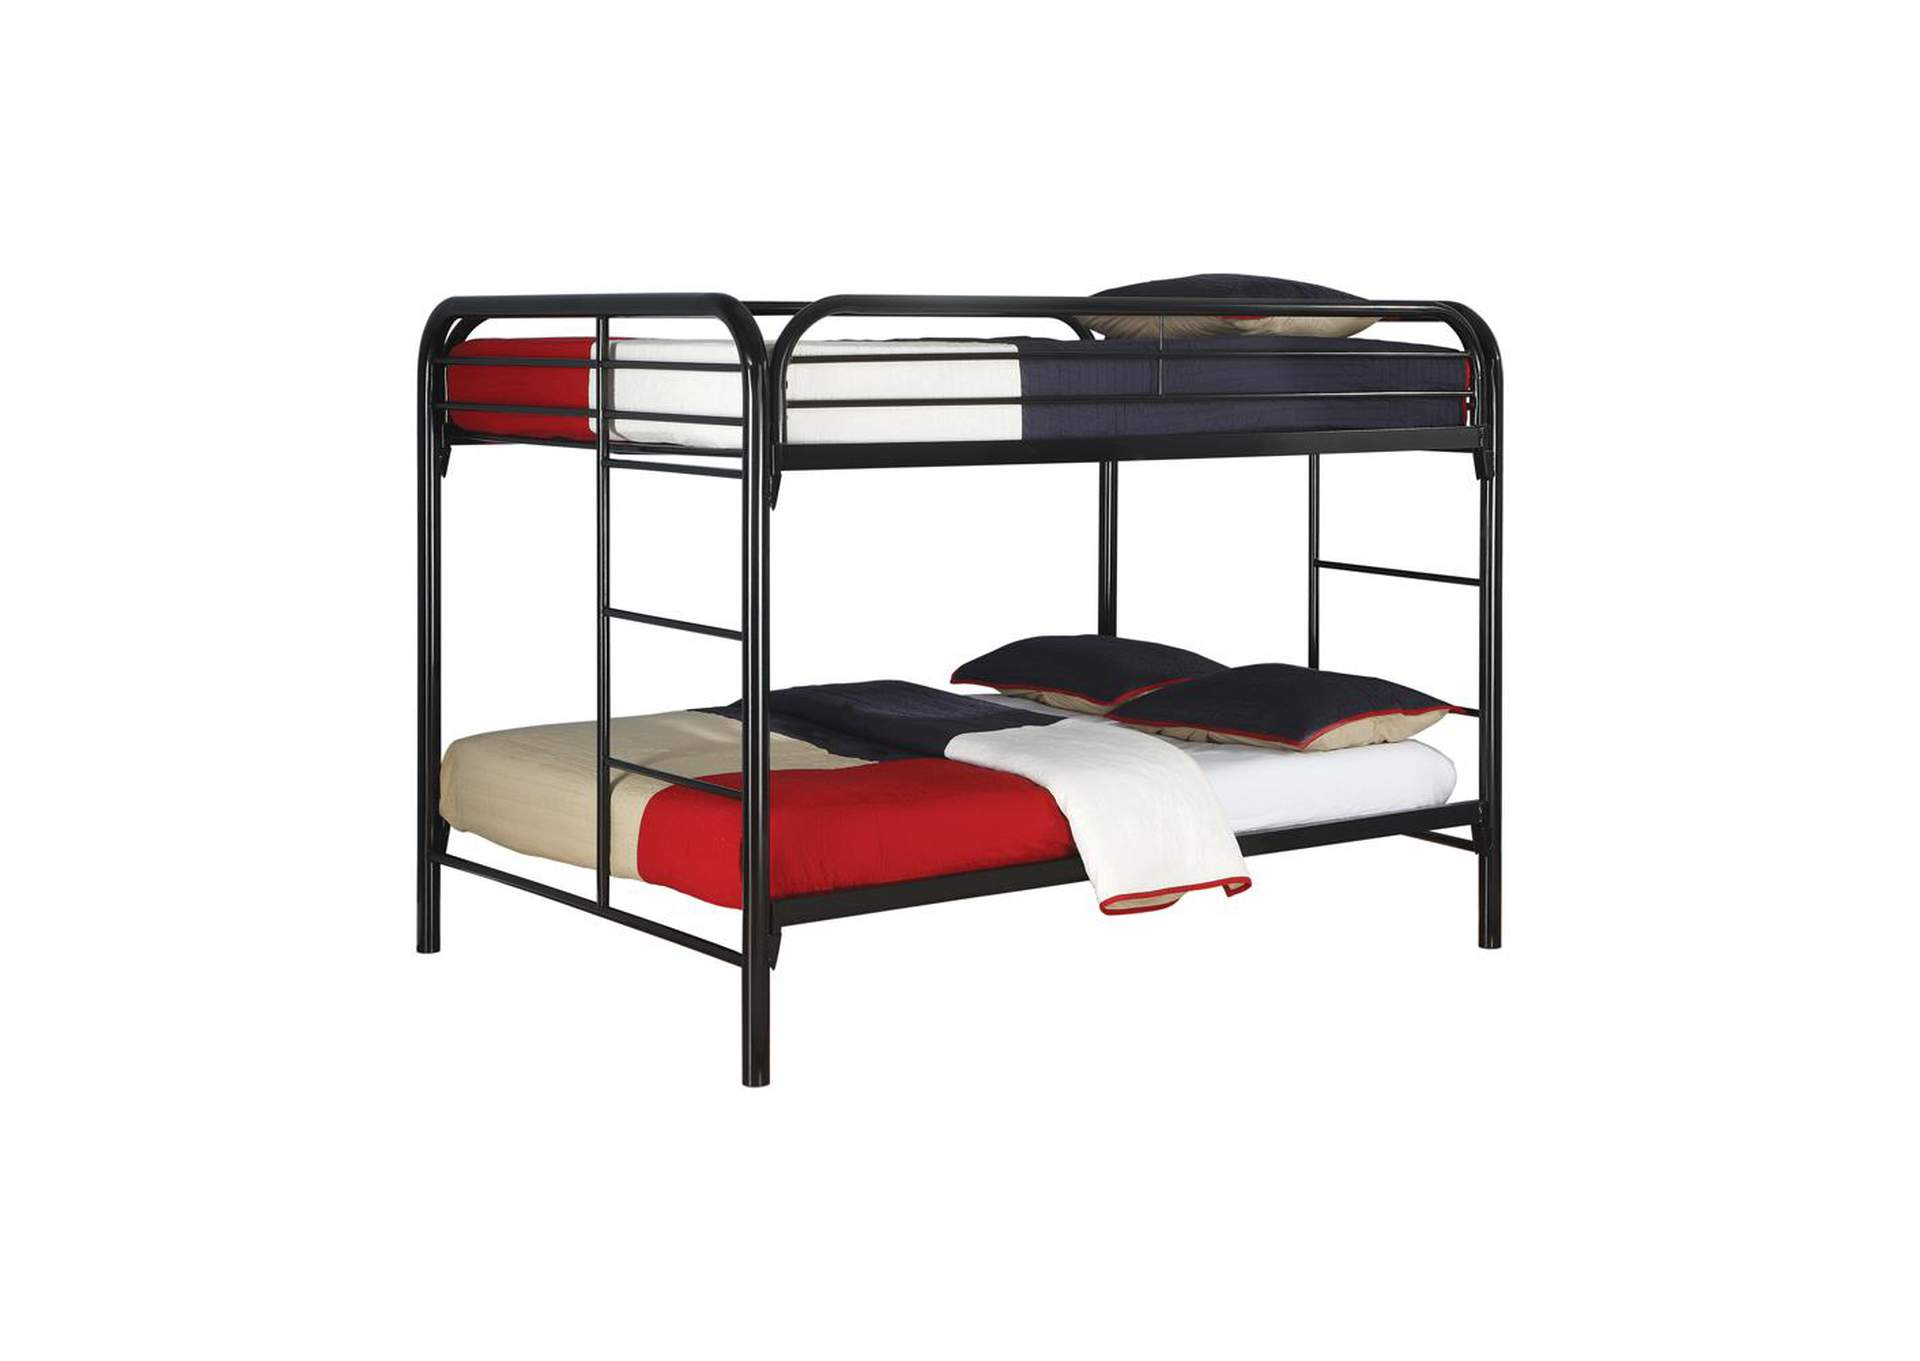 Gallery Fordham Black Full-Over-Full Bunk Bed,Coaster Furniture